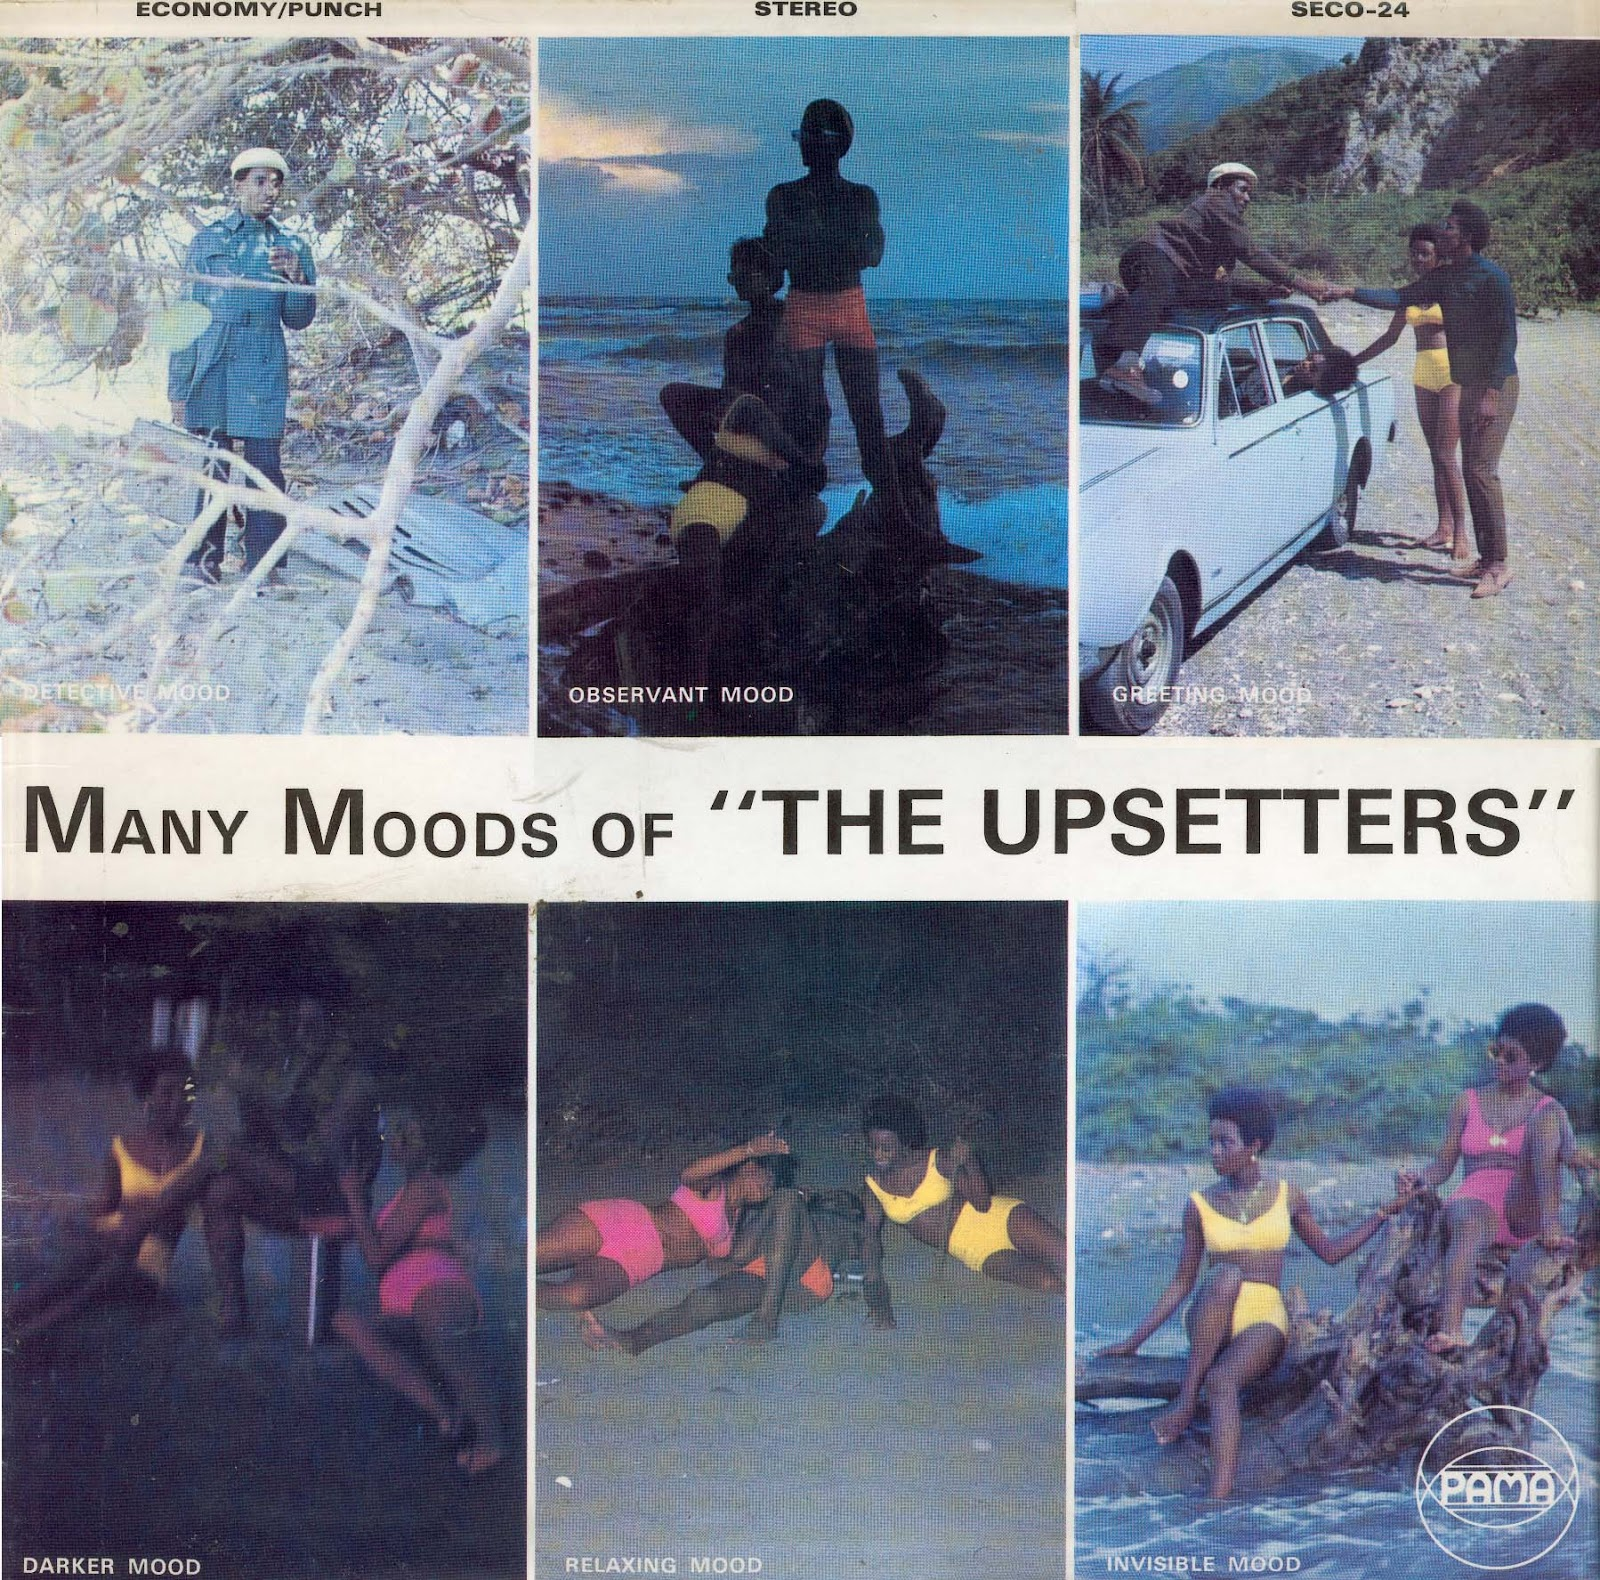 The Upsetters - The Thanks We Get